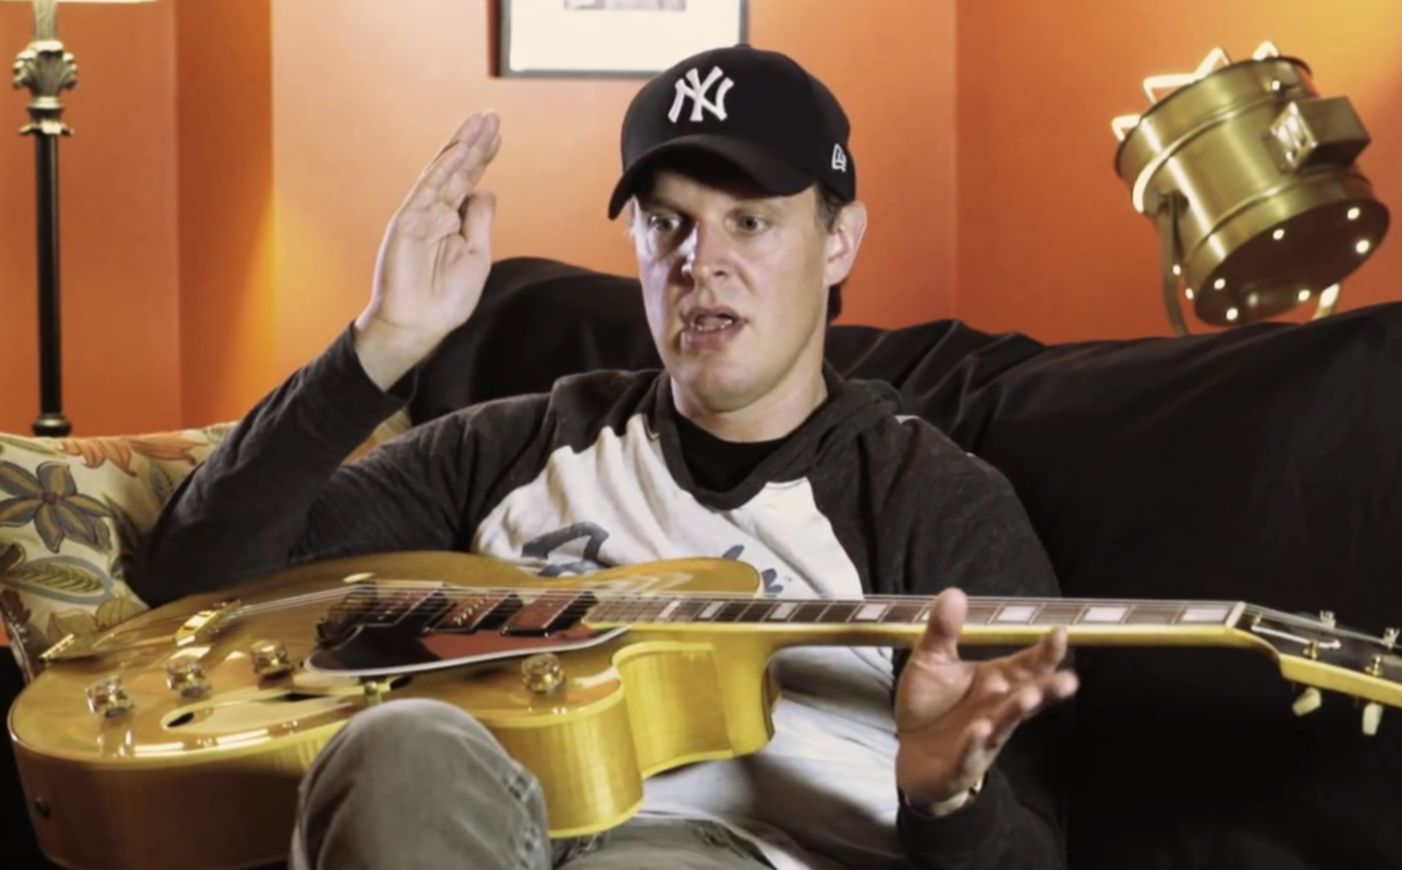 joe bonamassa album trailer still 2016